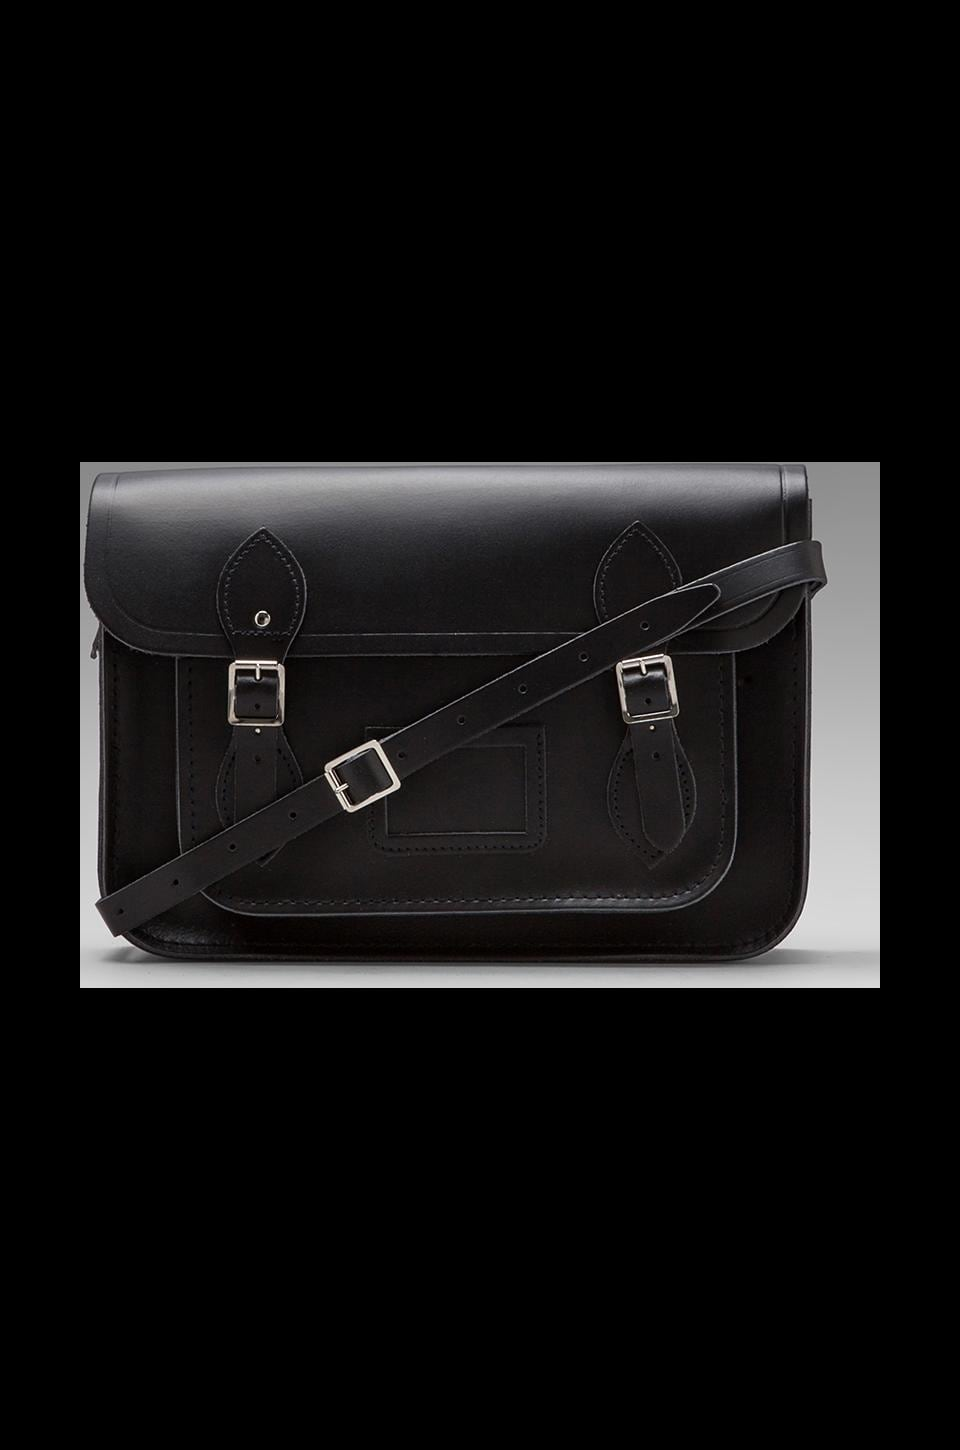 The Cambridge Satchel Company Core Collection 13'' Satchel in Black